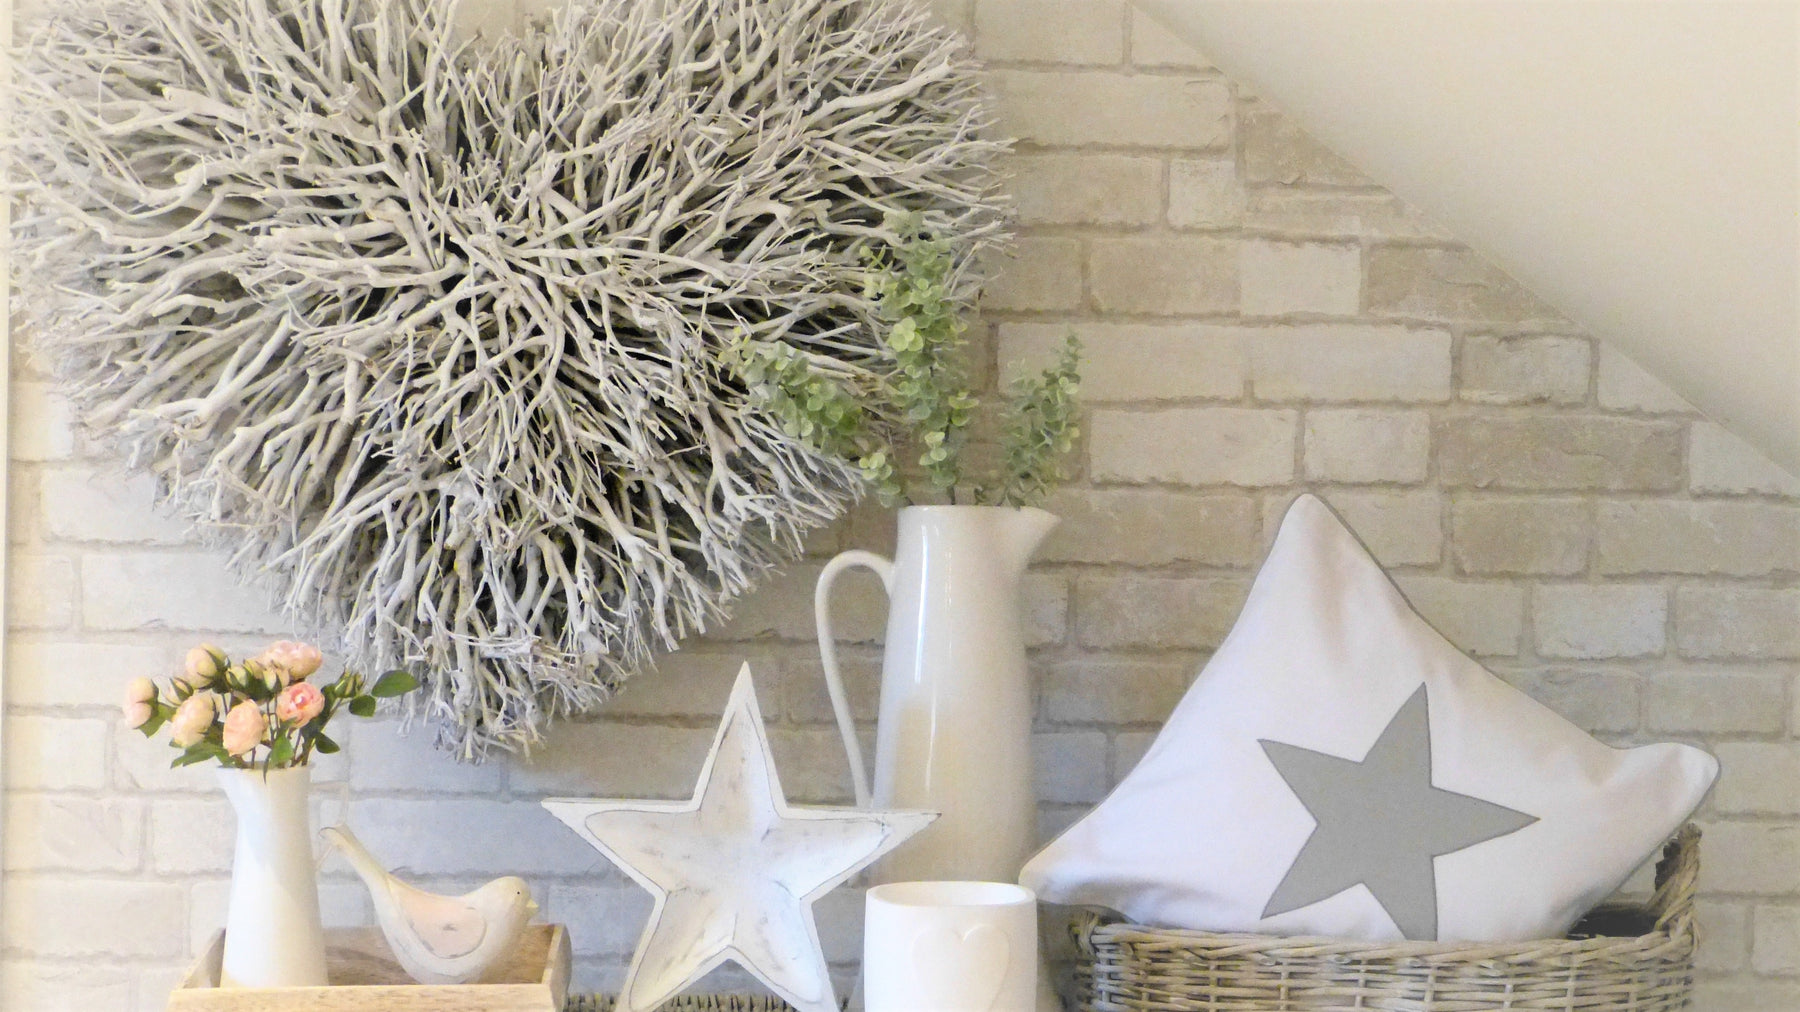 Large twig heart double layer twig heart star cushion star tray white jug with eucalyptus wooden bird and nordic tray